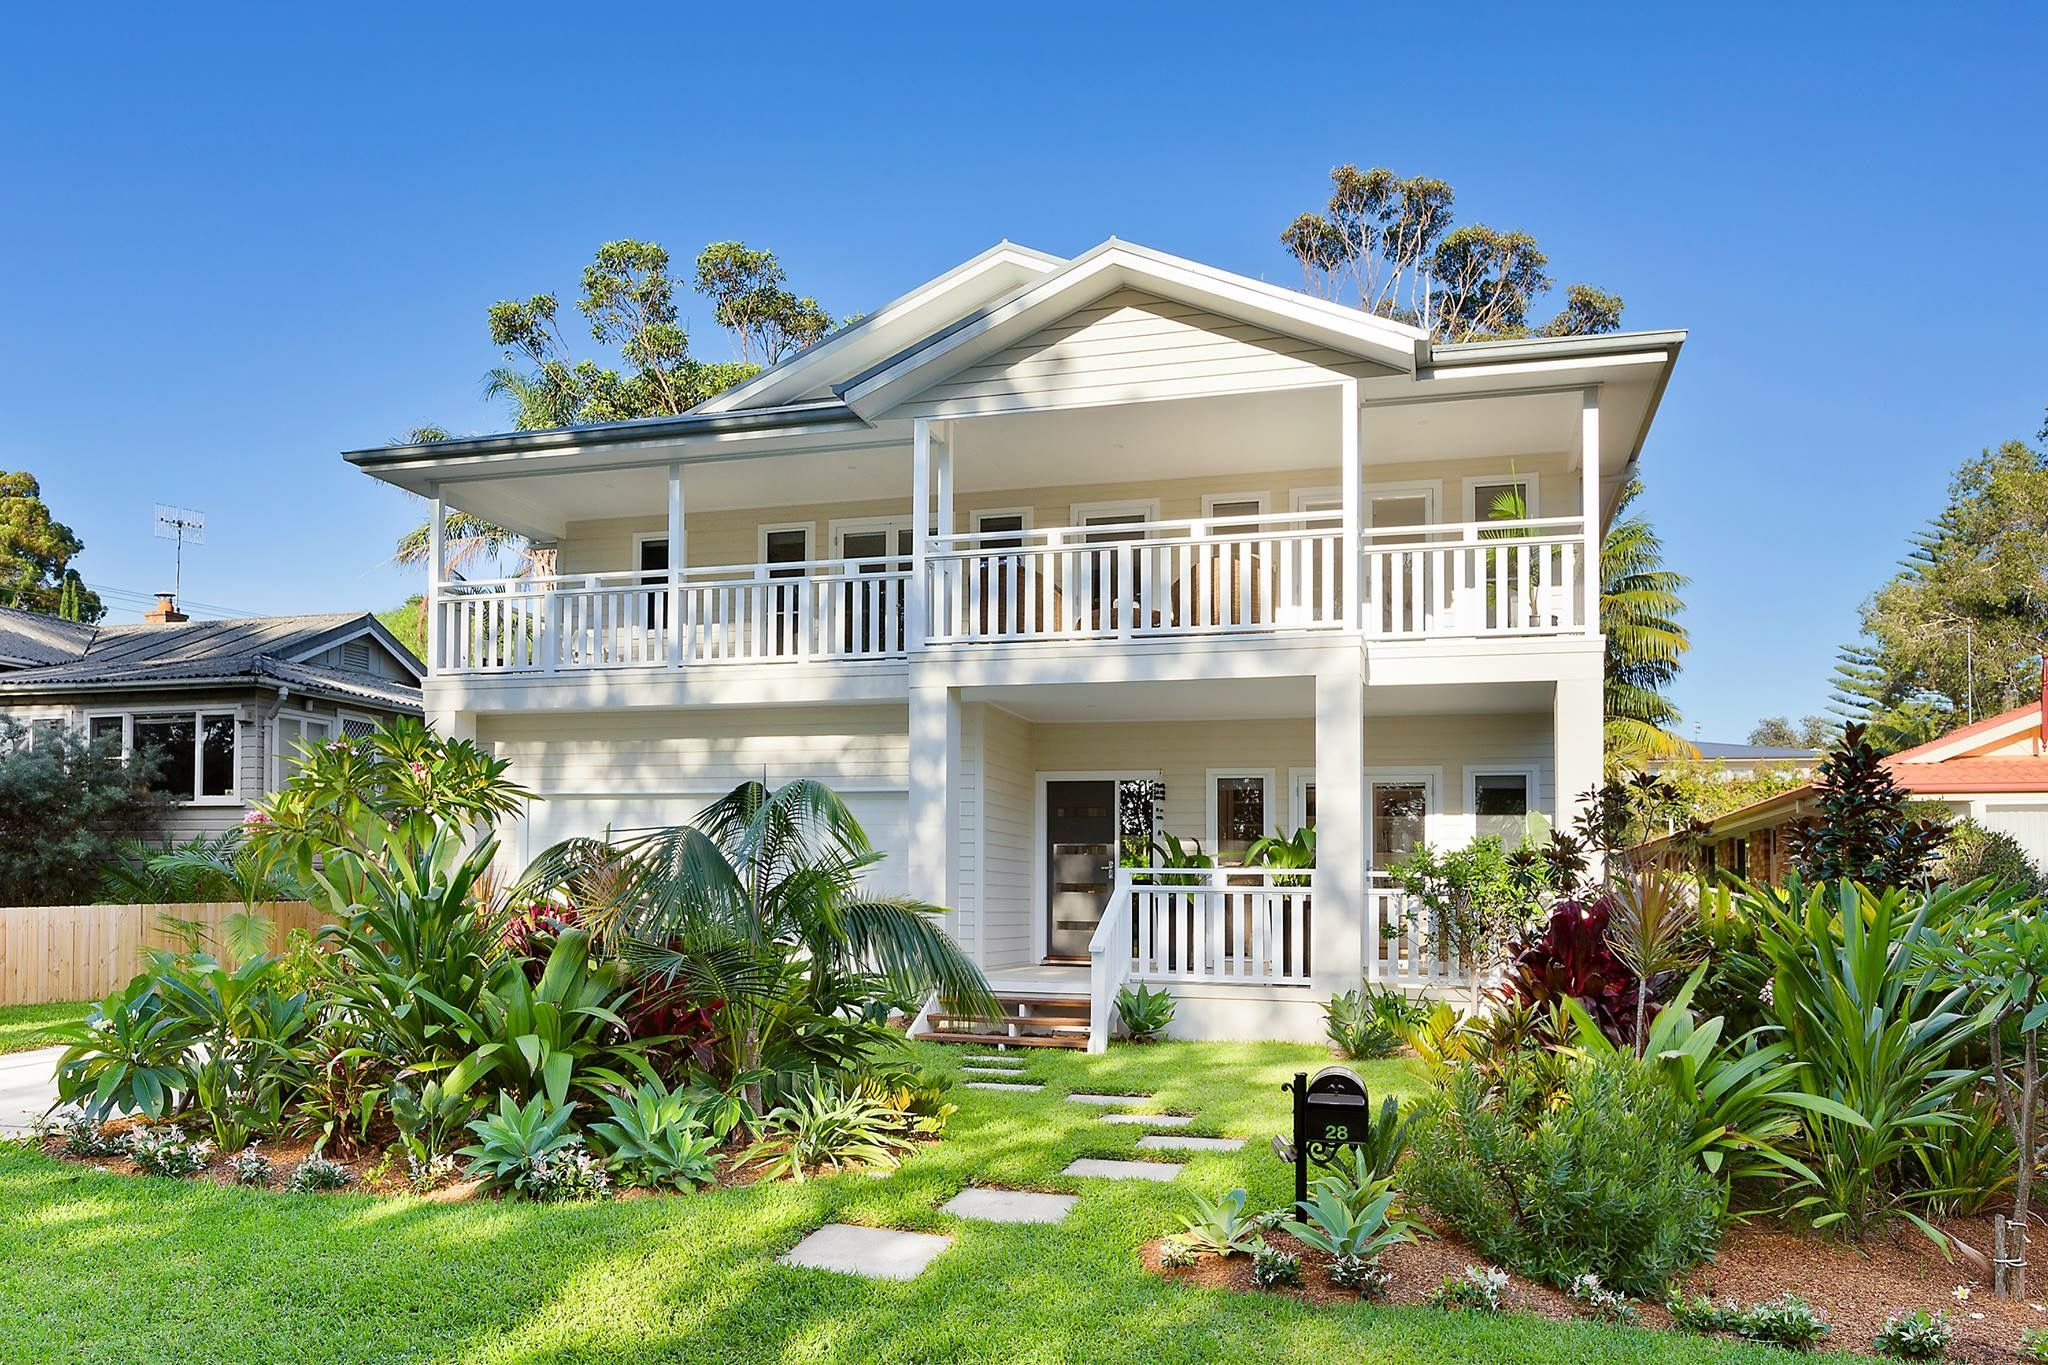 Beach Style Hamptons Style Double Storey House Tropical Gardens Australia Facade House Double Storey House Hamptons House